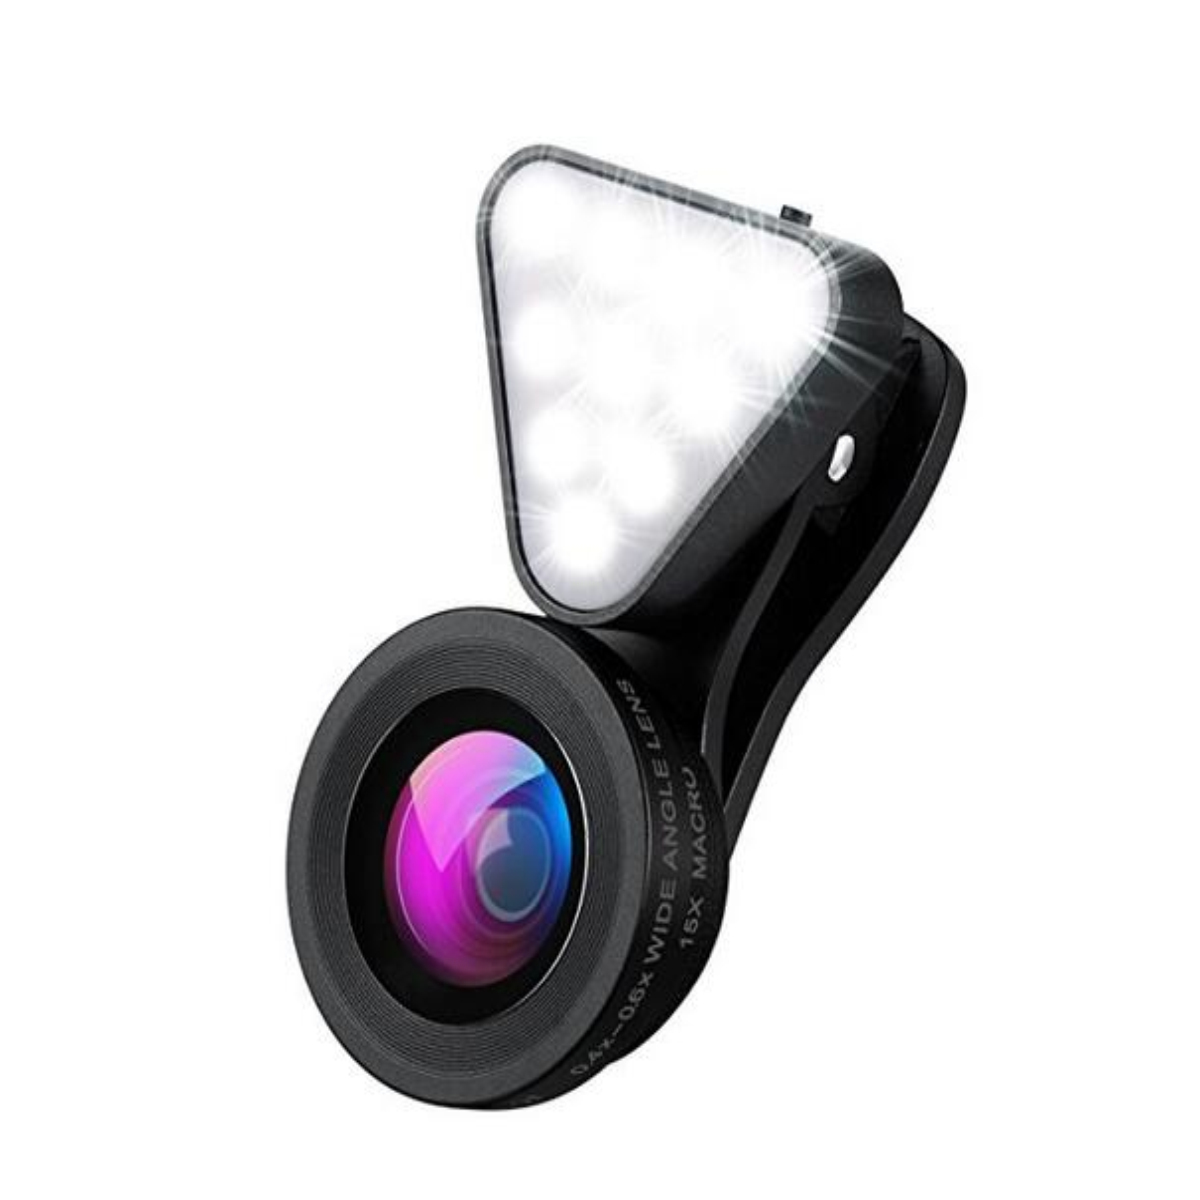 2 in 1 Clip-on Glass Lens Wide Angle Lens with Recharge